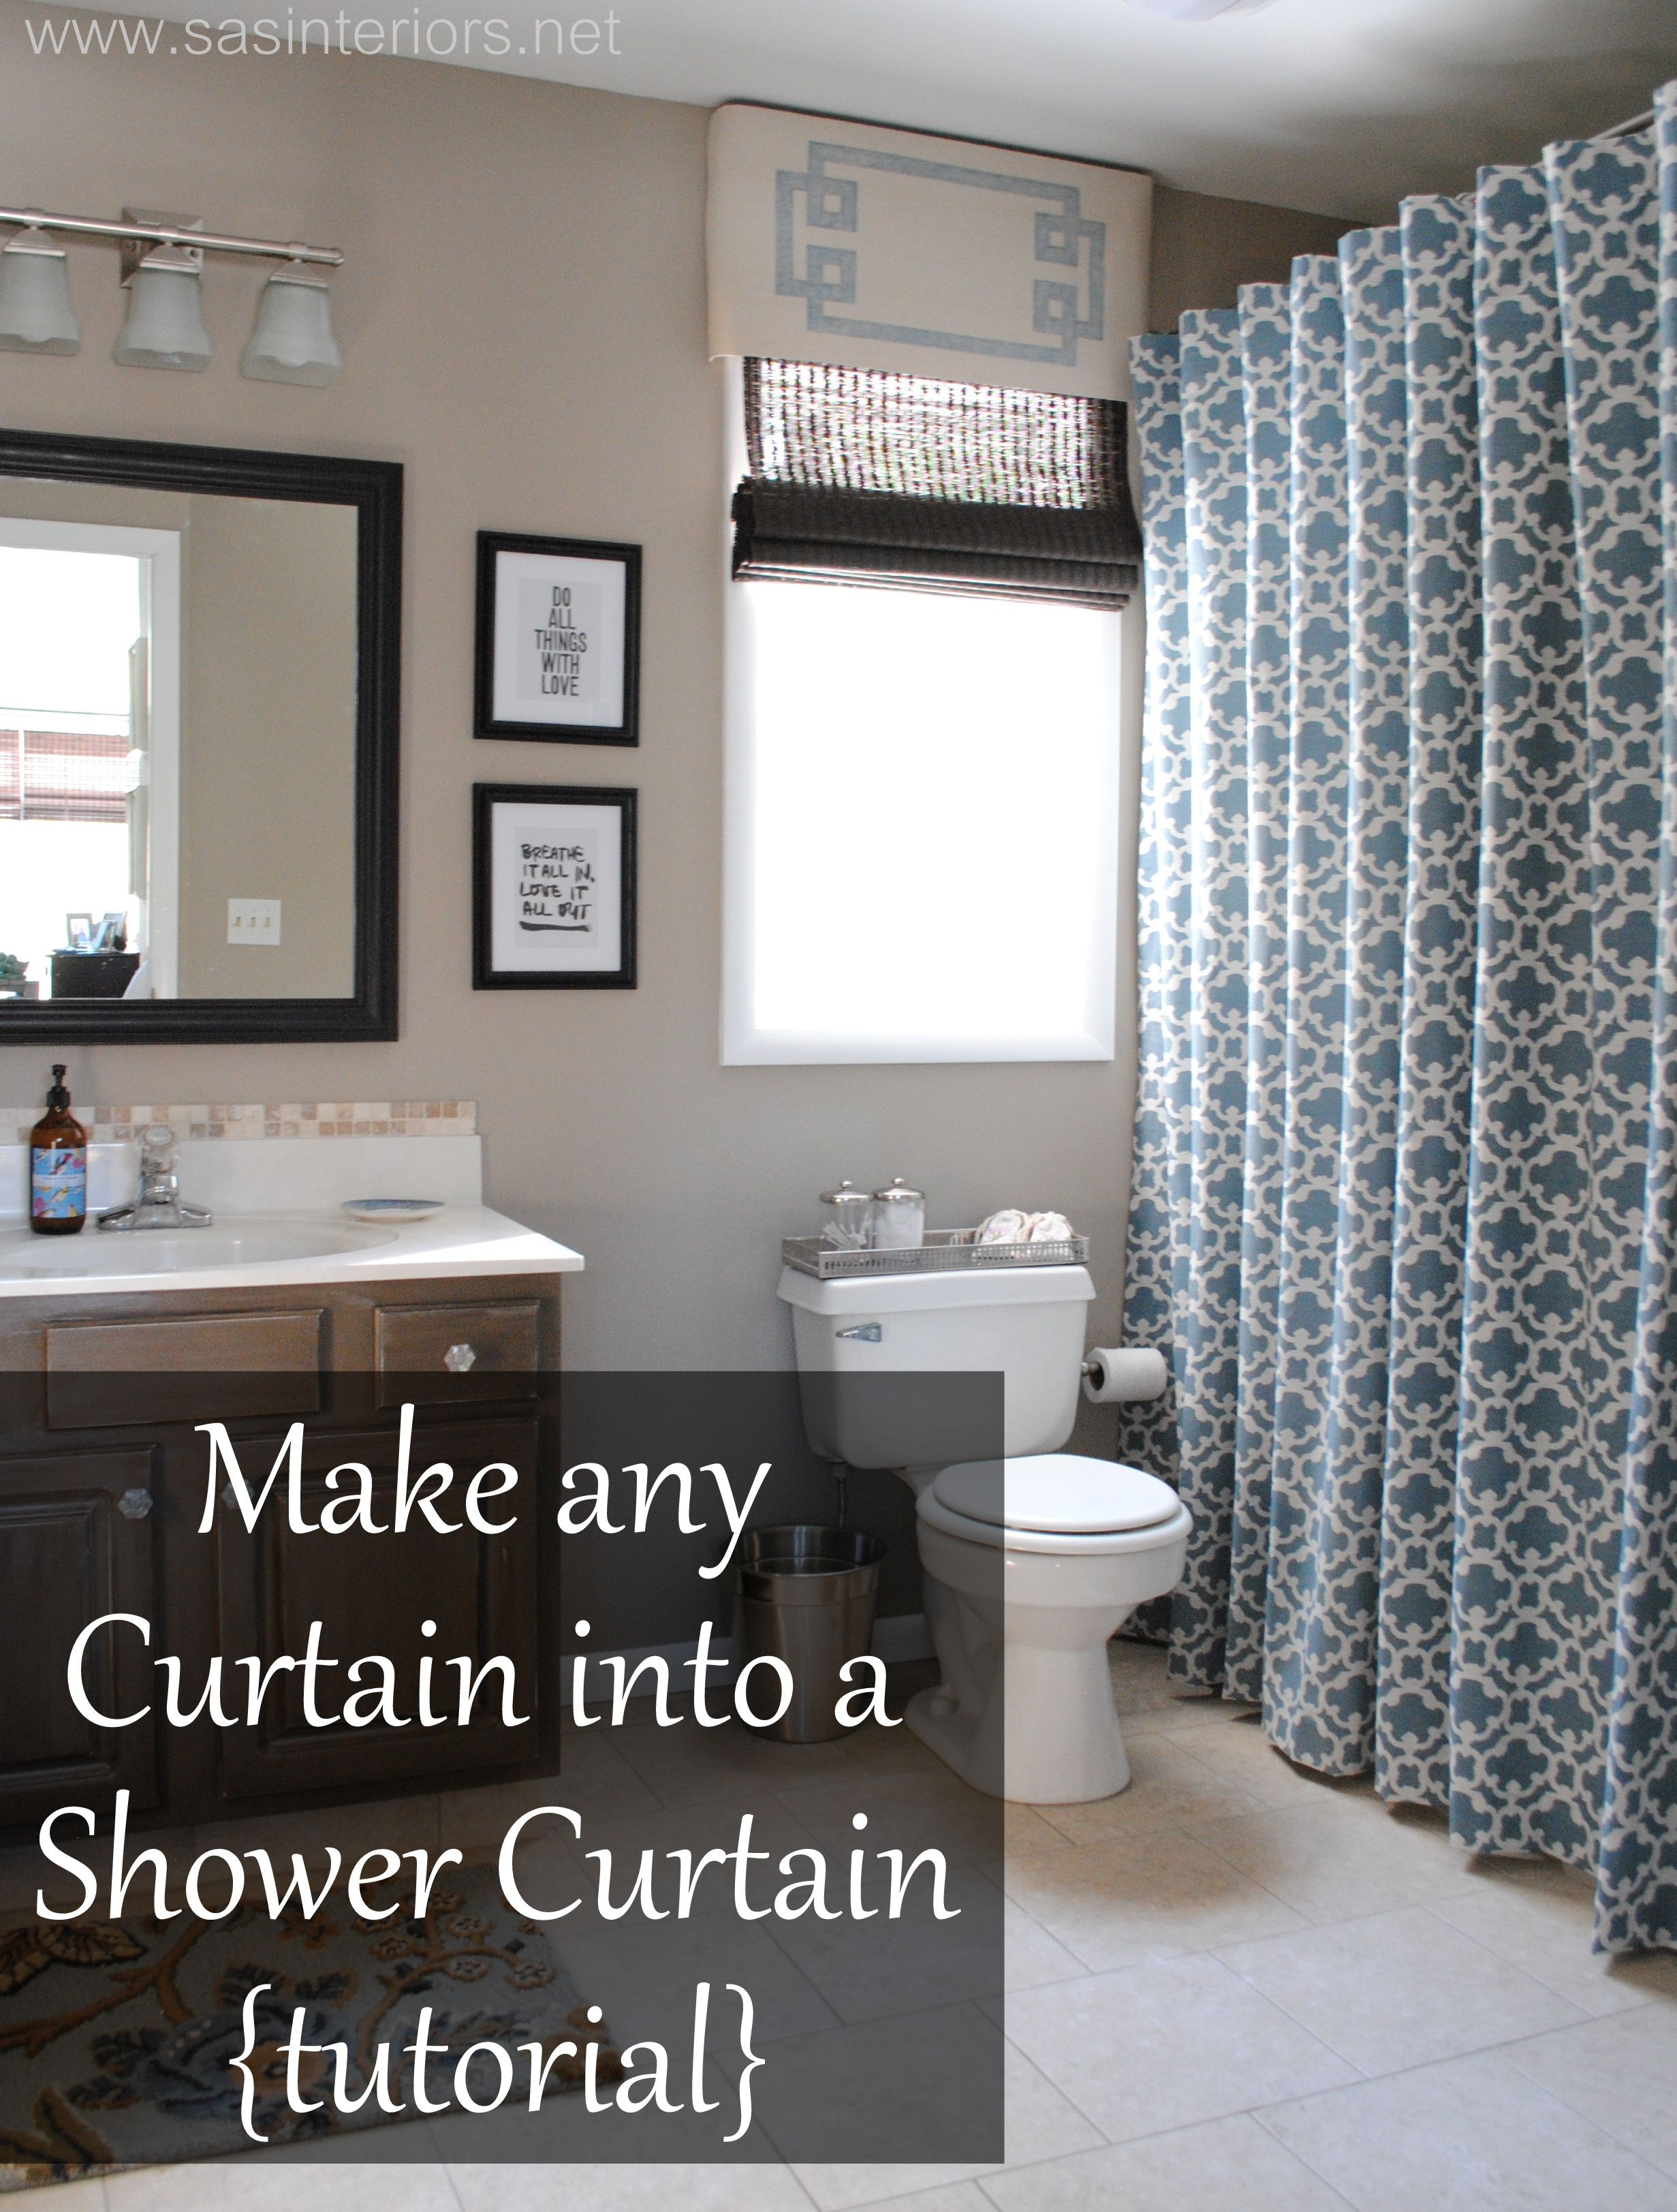 SHOWER CURTAINS Make ANY Curtain Into A Shower Tutorial This Is NO SEW Project You Just Need Some Drapes That Match Your Bathroom